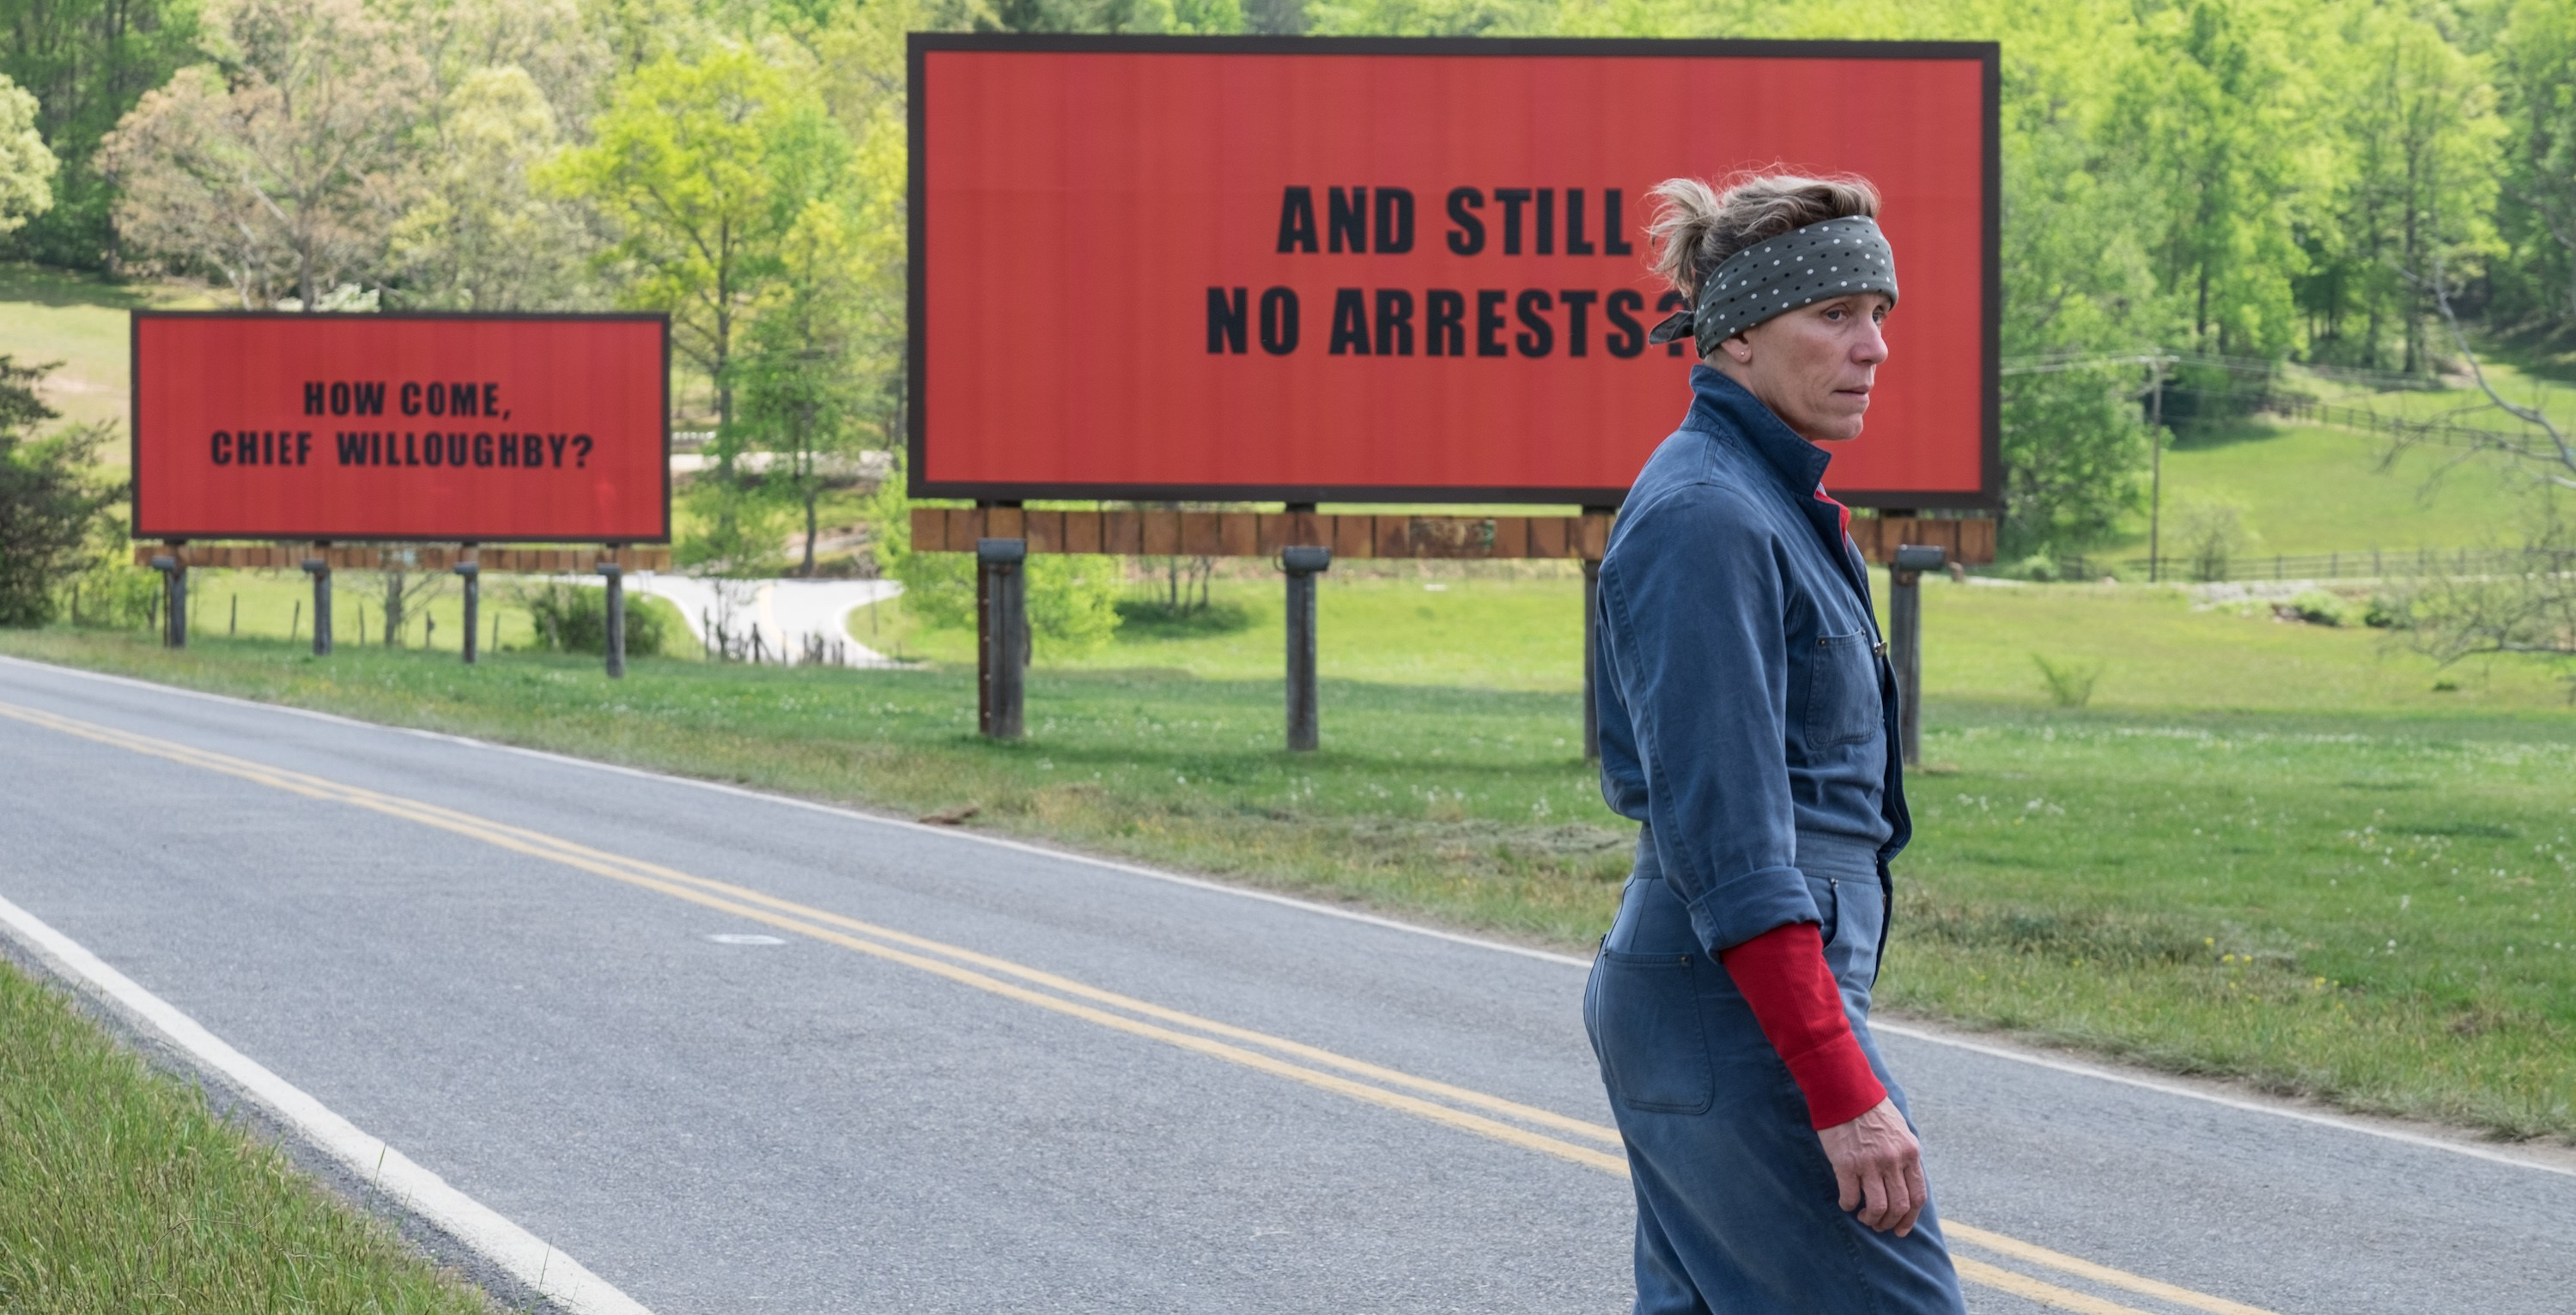 london film festival tickets CLOSING NIGHT GALA - THREE BILLBOARDS OUTSIDE EBBING, MISSOURI - Sunday 15 October 2017 19:00